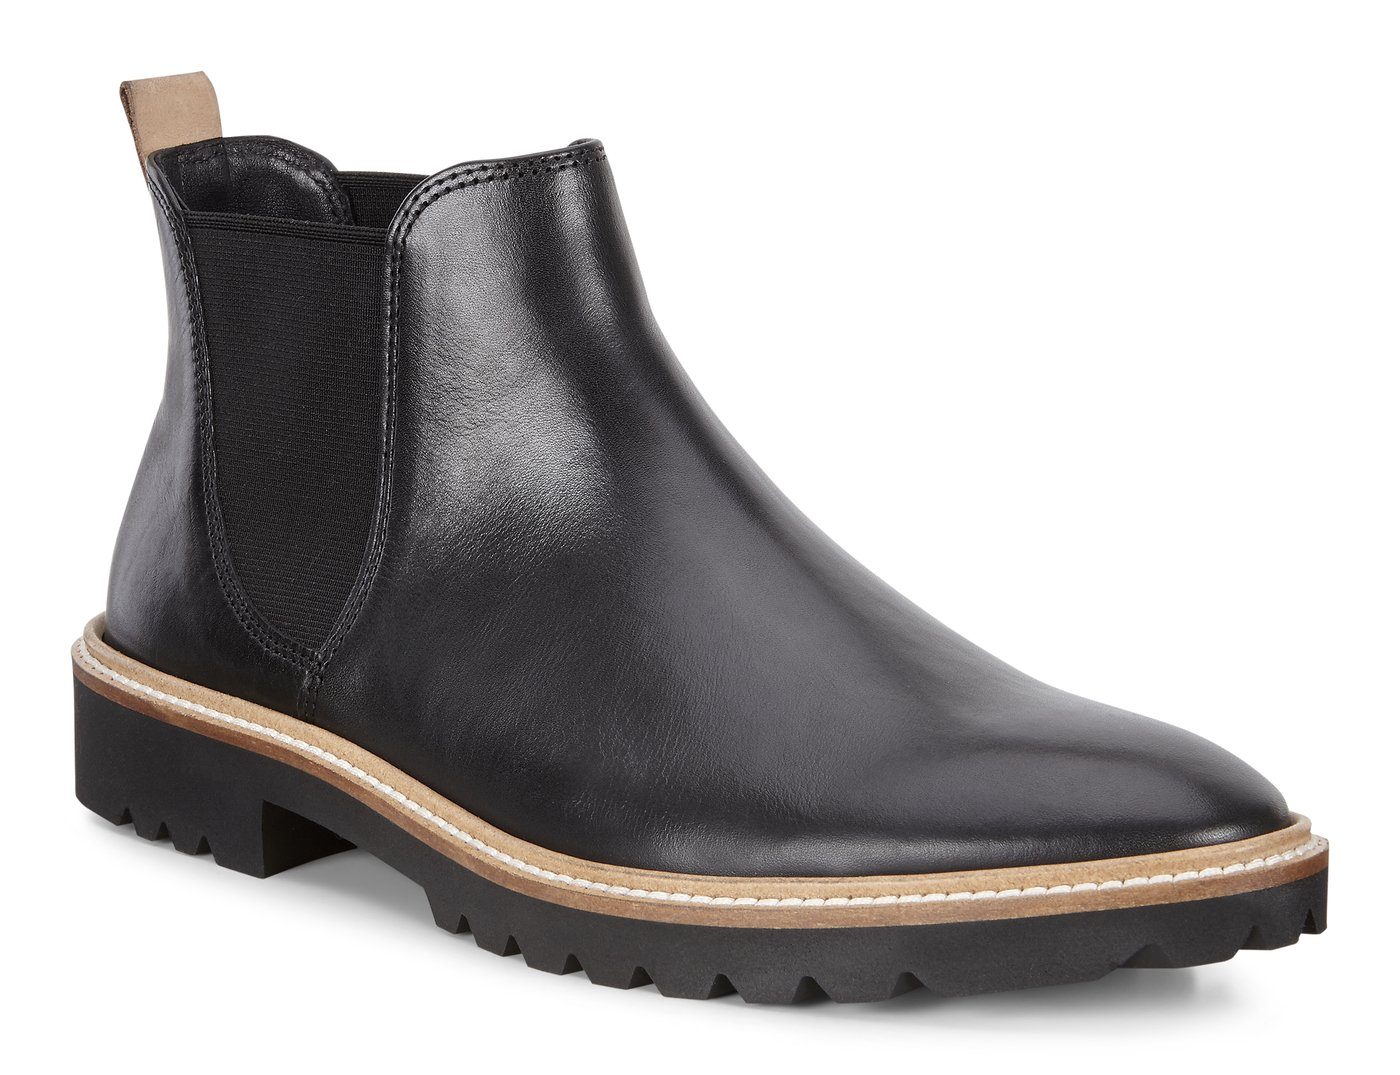 ECCO INCISE TAILORED Side Gore Ankle Boot